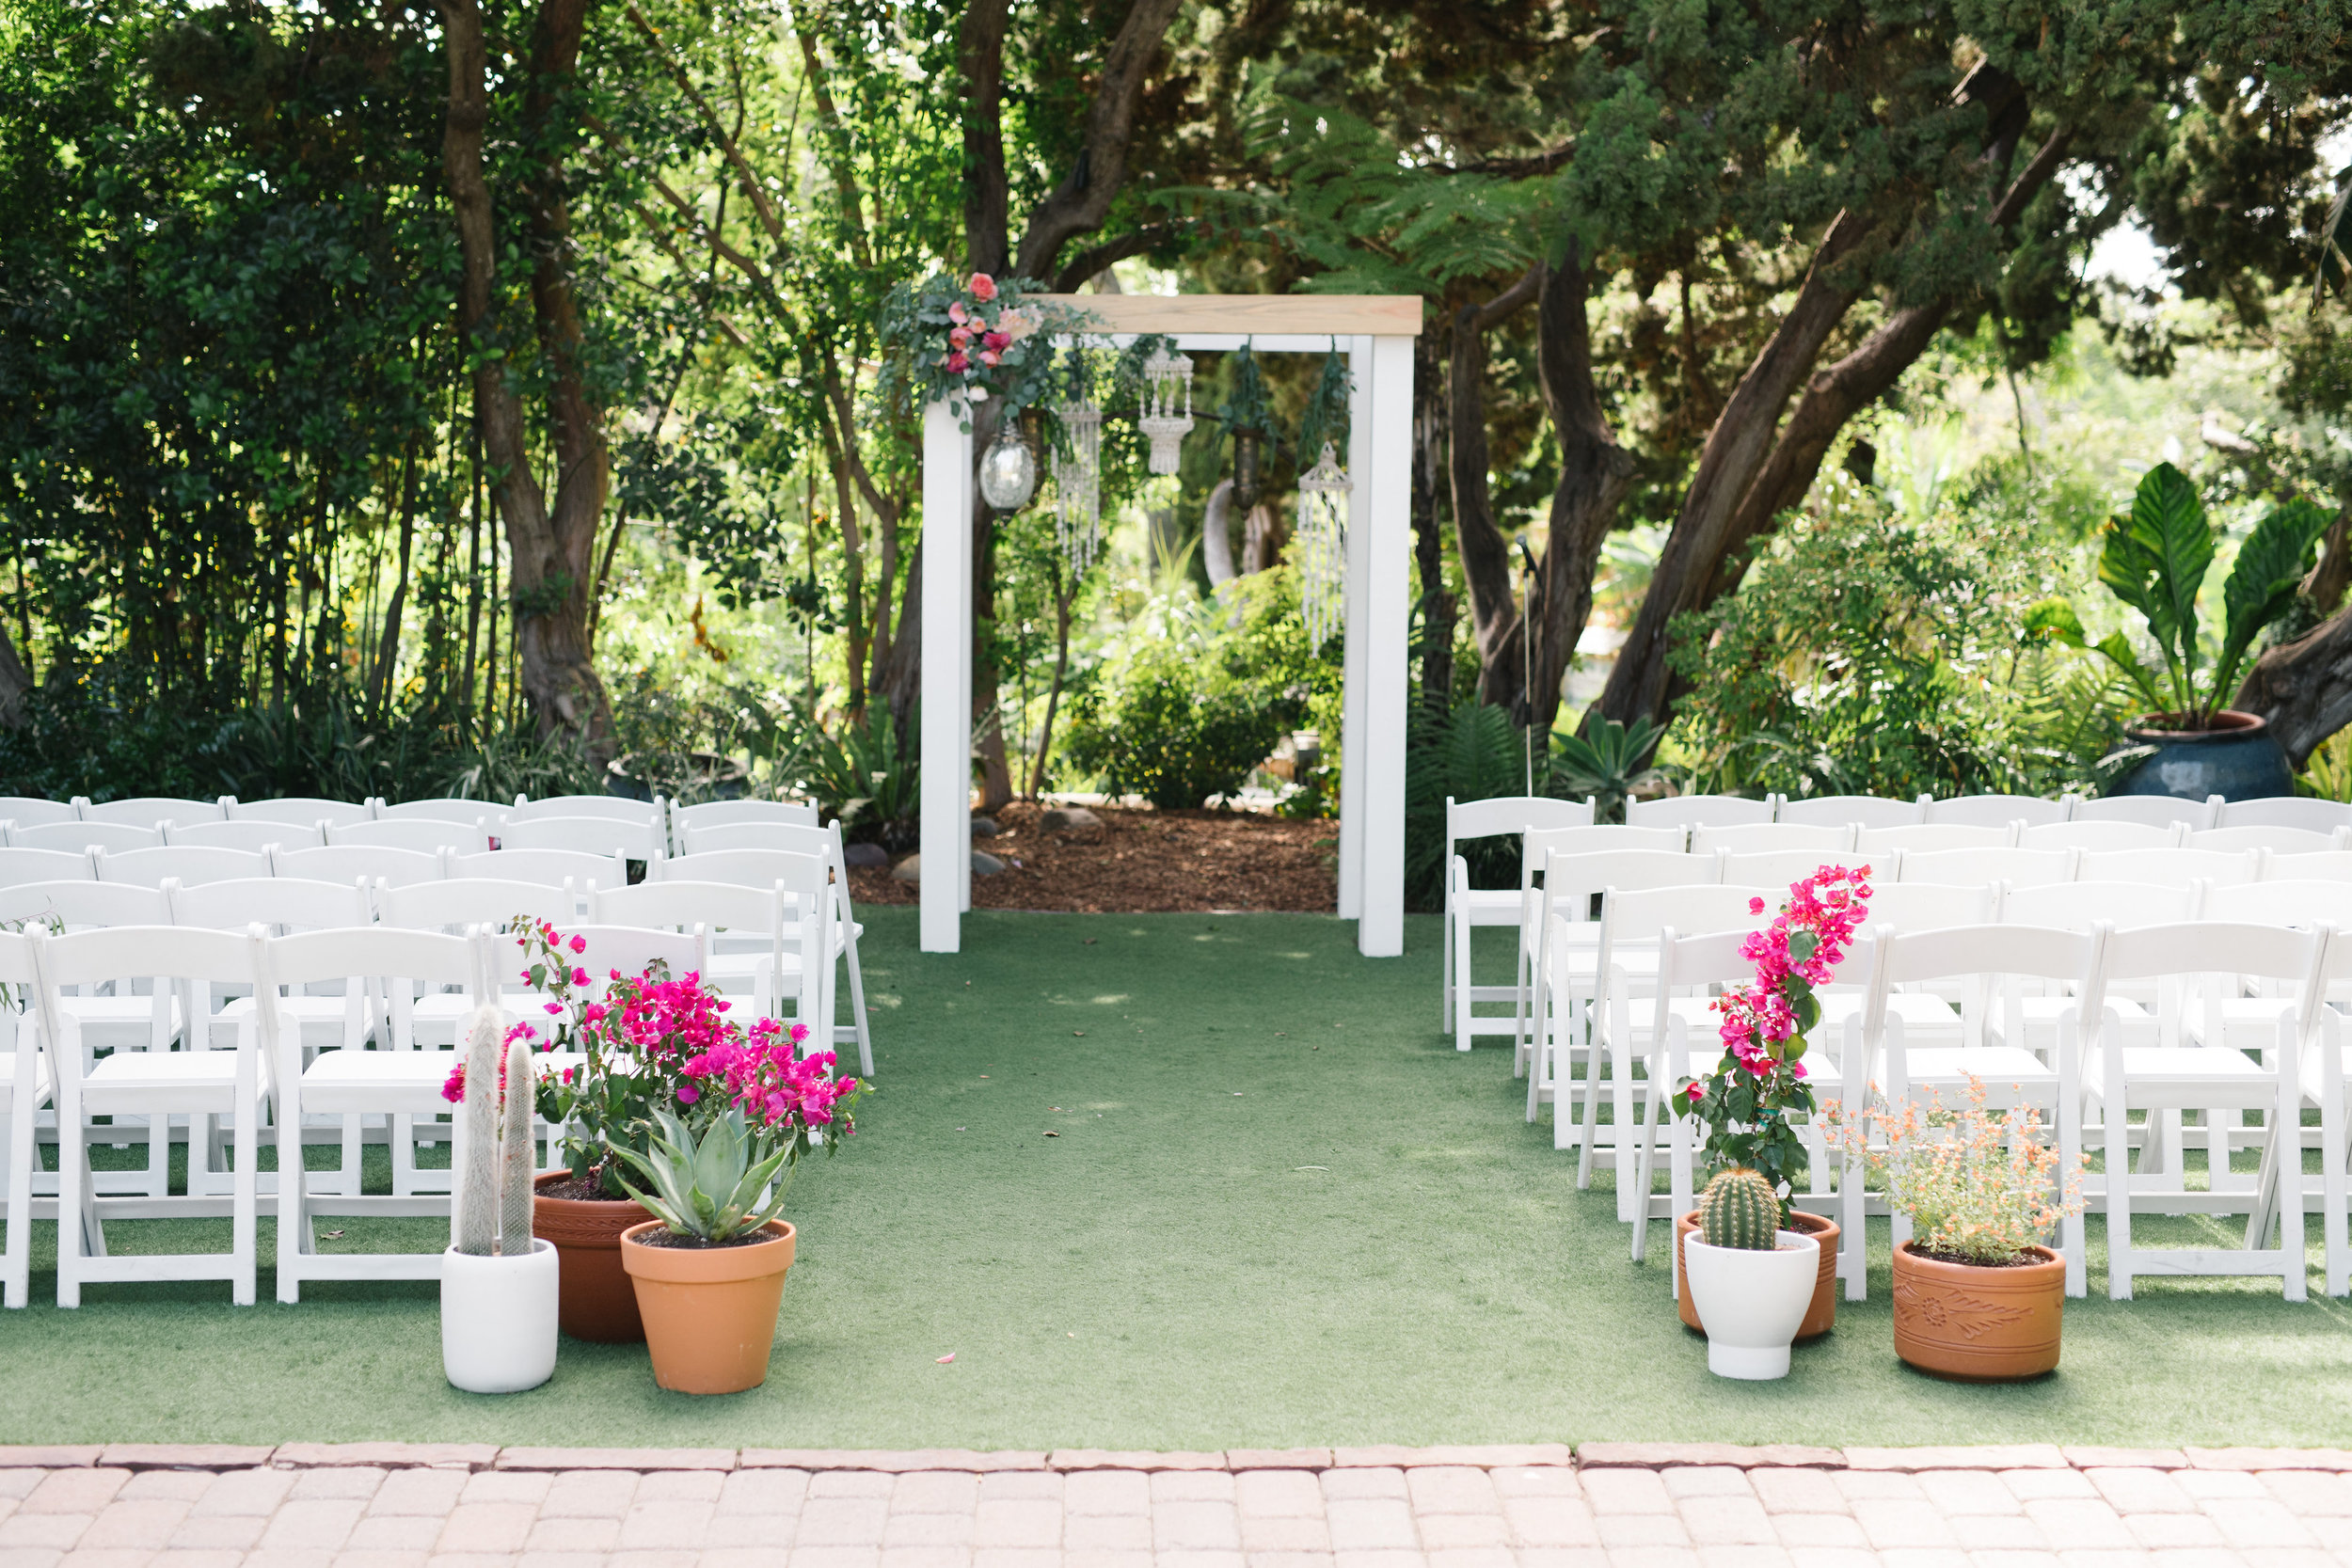 sandiegobotanicgardenswedding.jpg